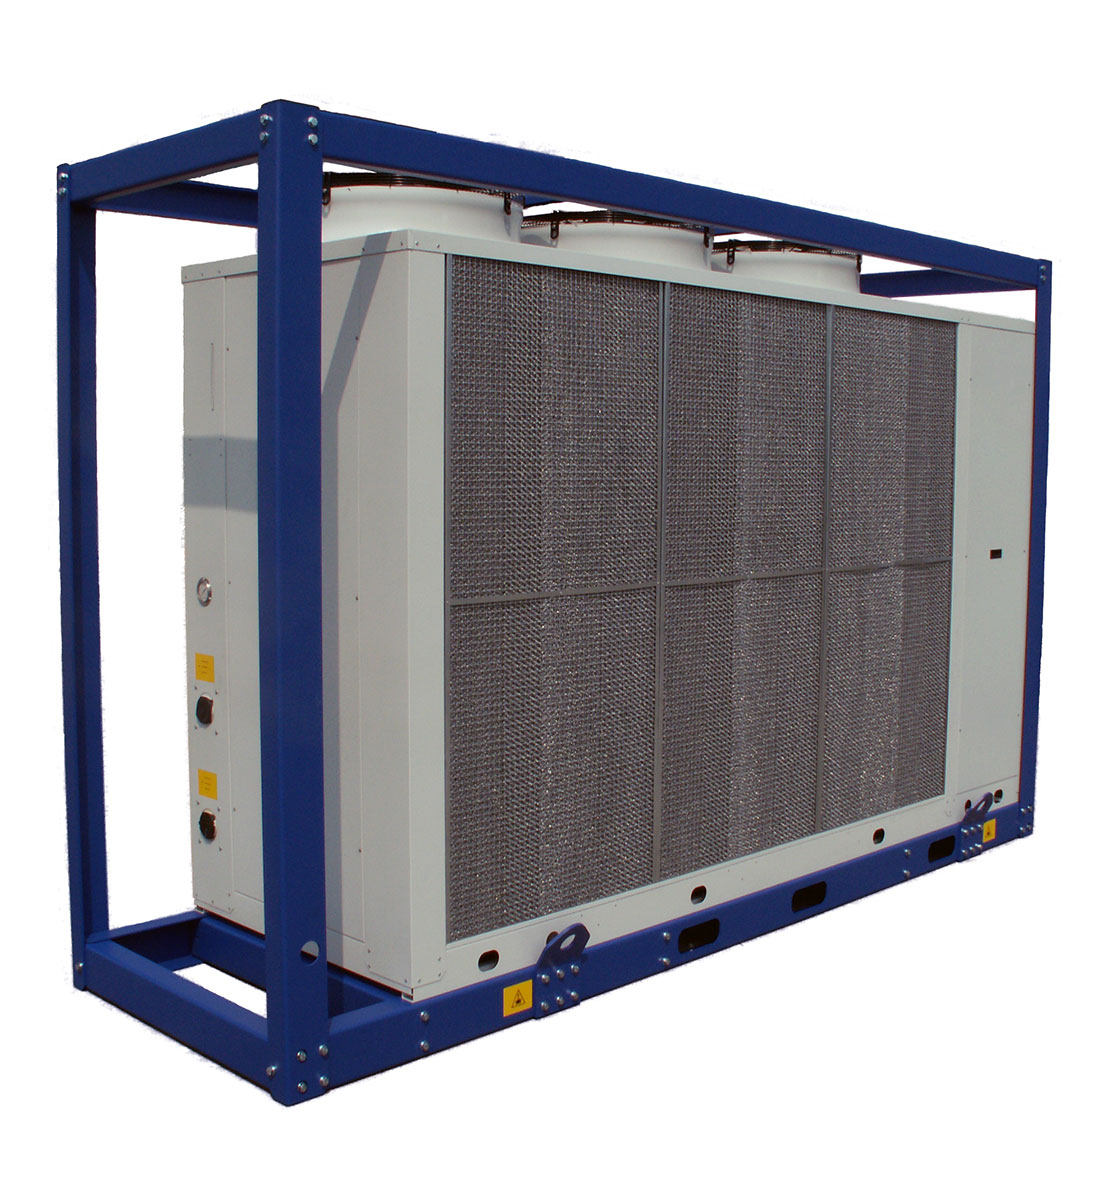 100kW Heat Pump Chiller